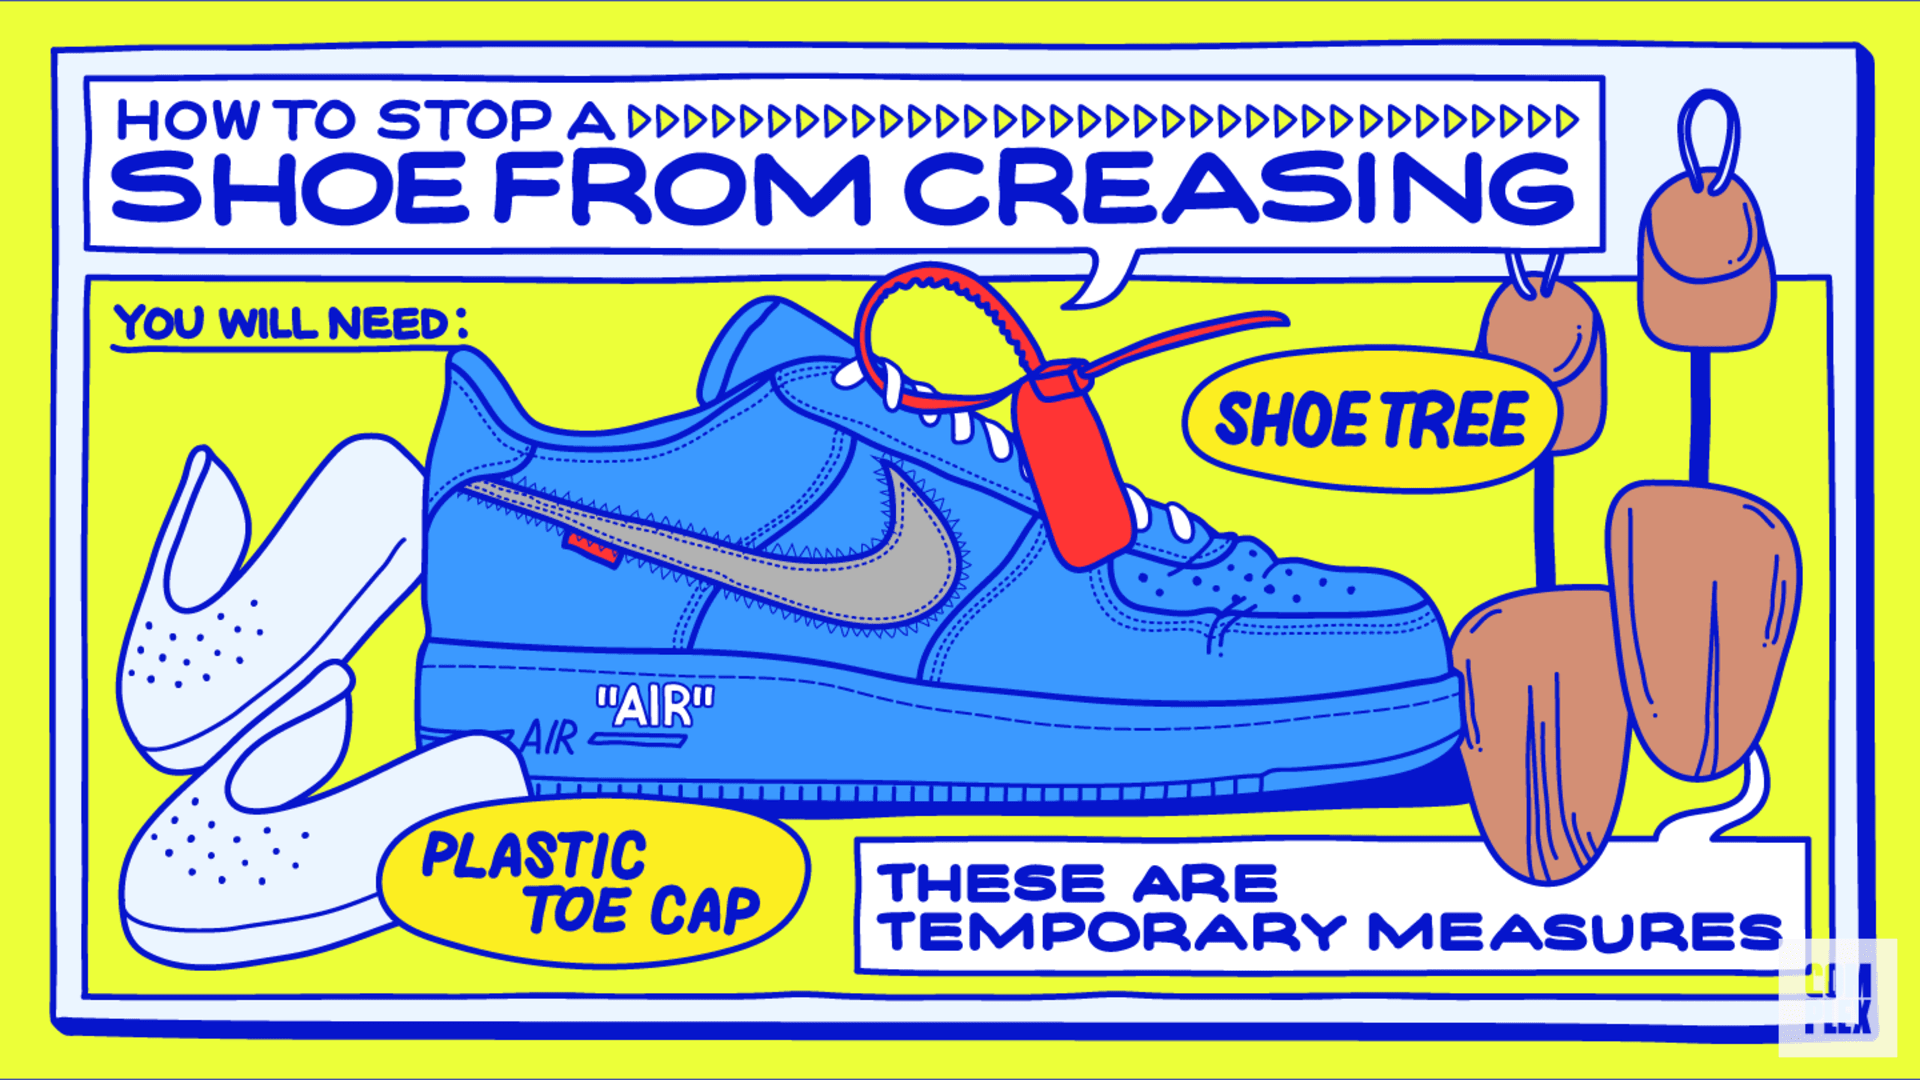 How to stop a shoe from creasing